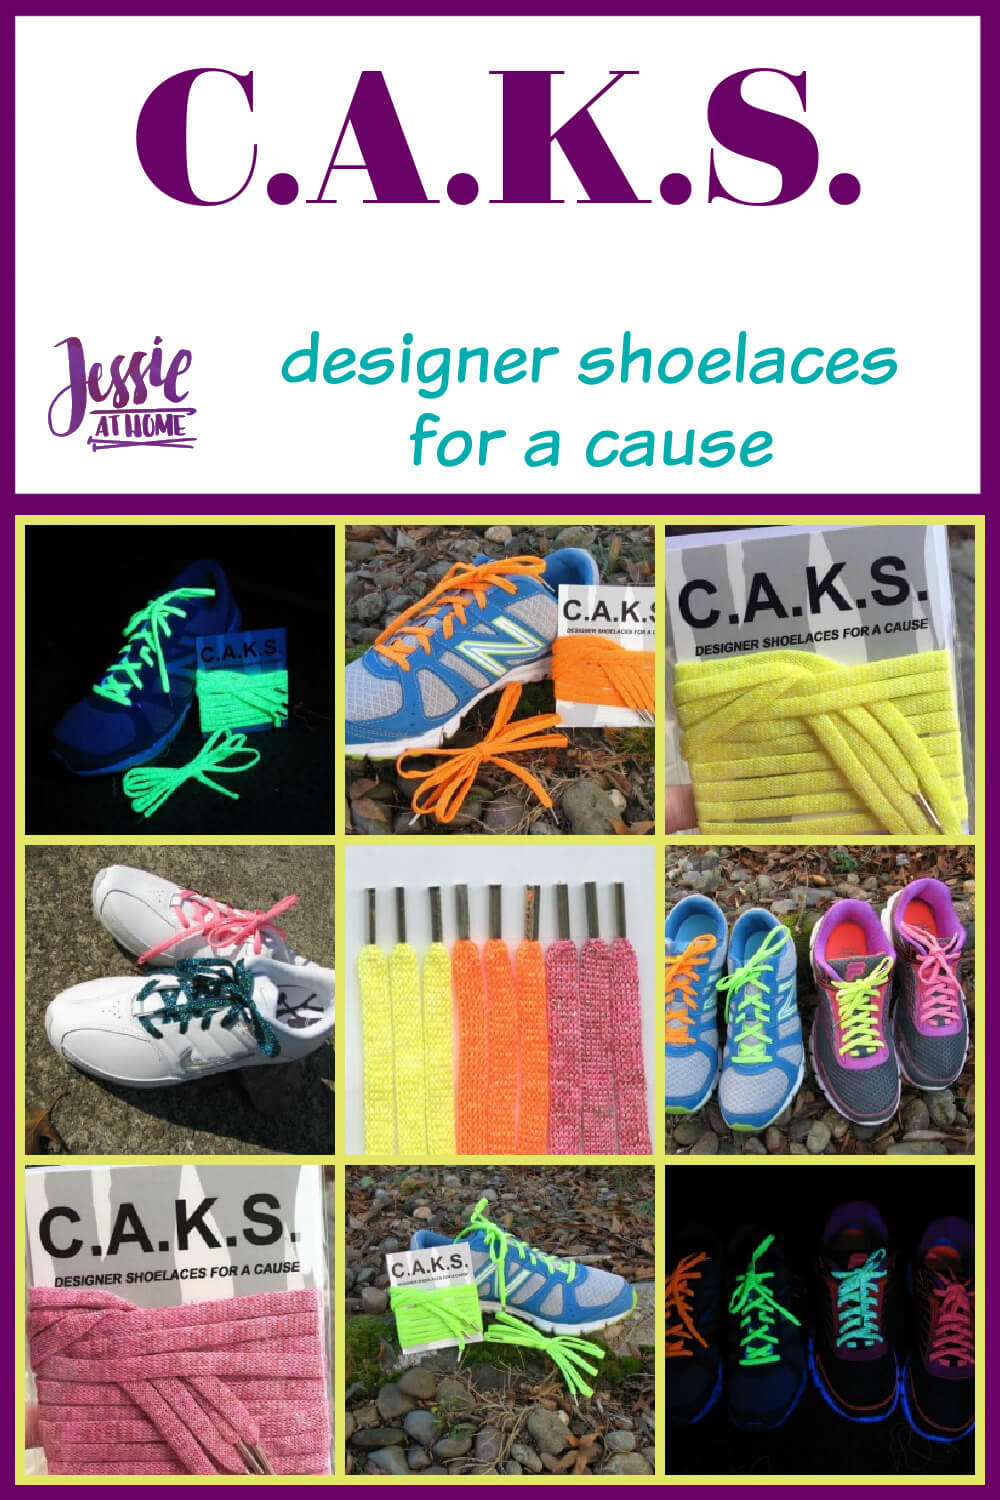 C.A.K.S. designer shoelaces for a cause from Kreinik